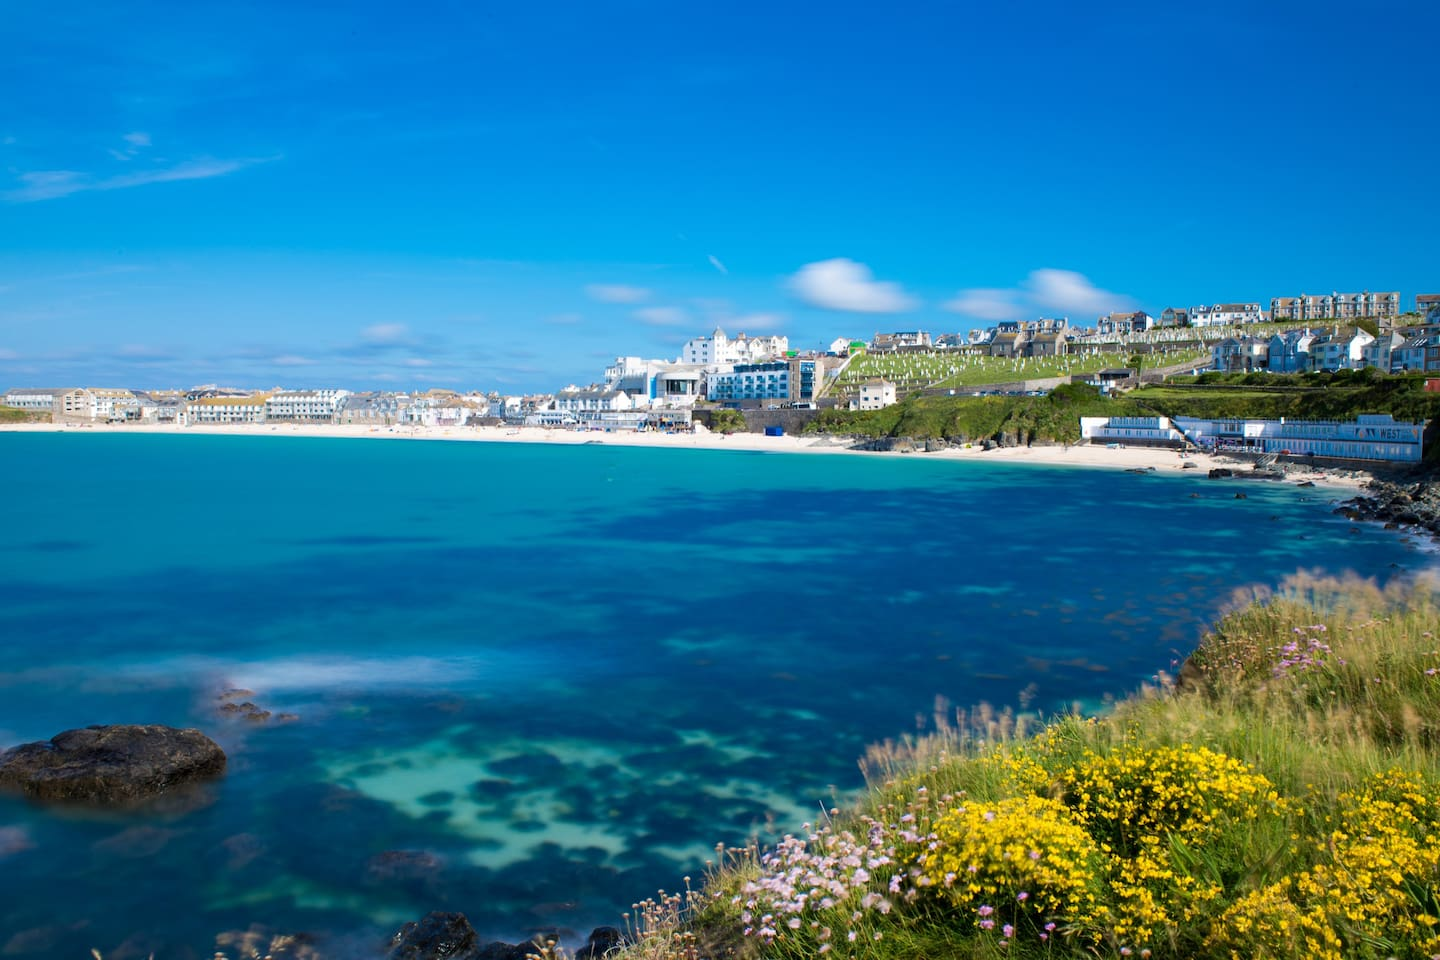 View of Porthmeor Beach from Mans head coastal path, just 3 minutes walking from apartment.